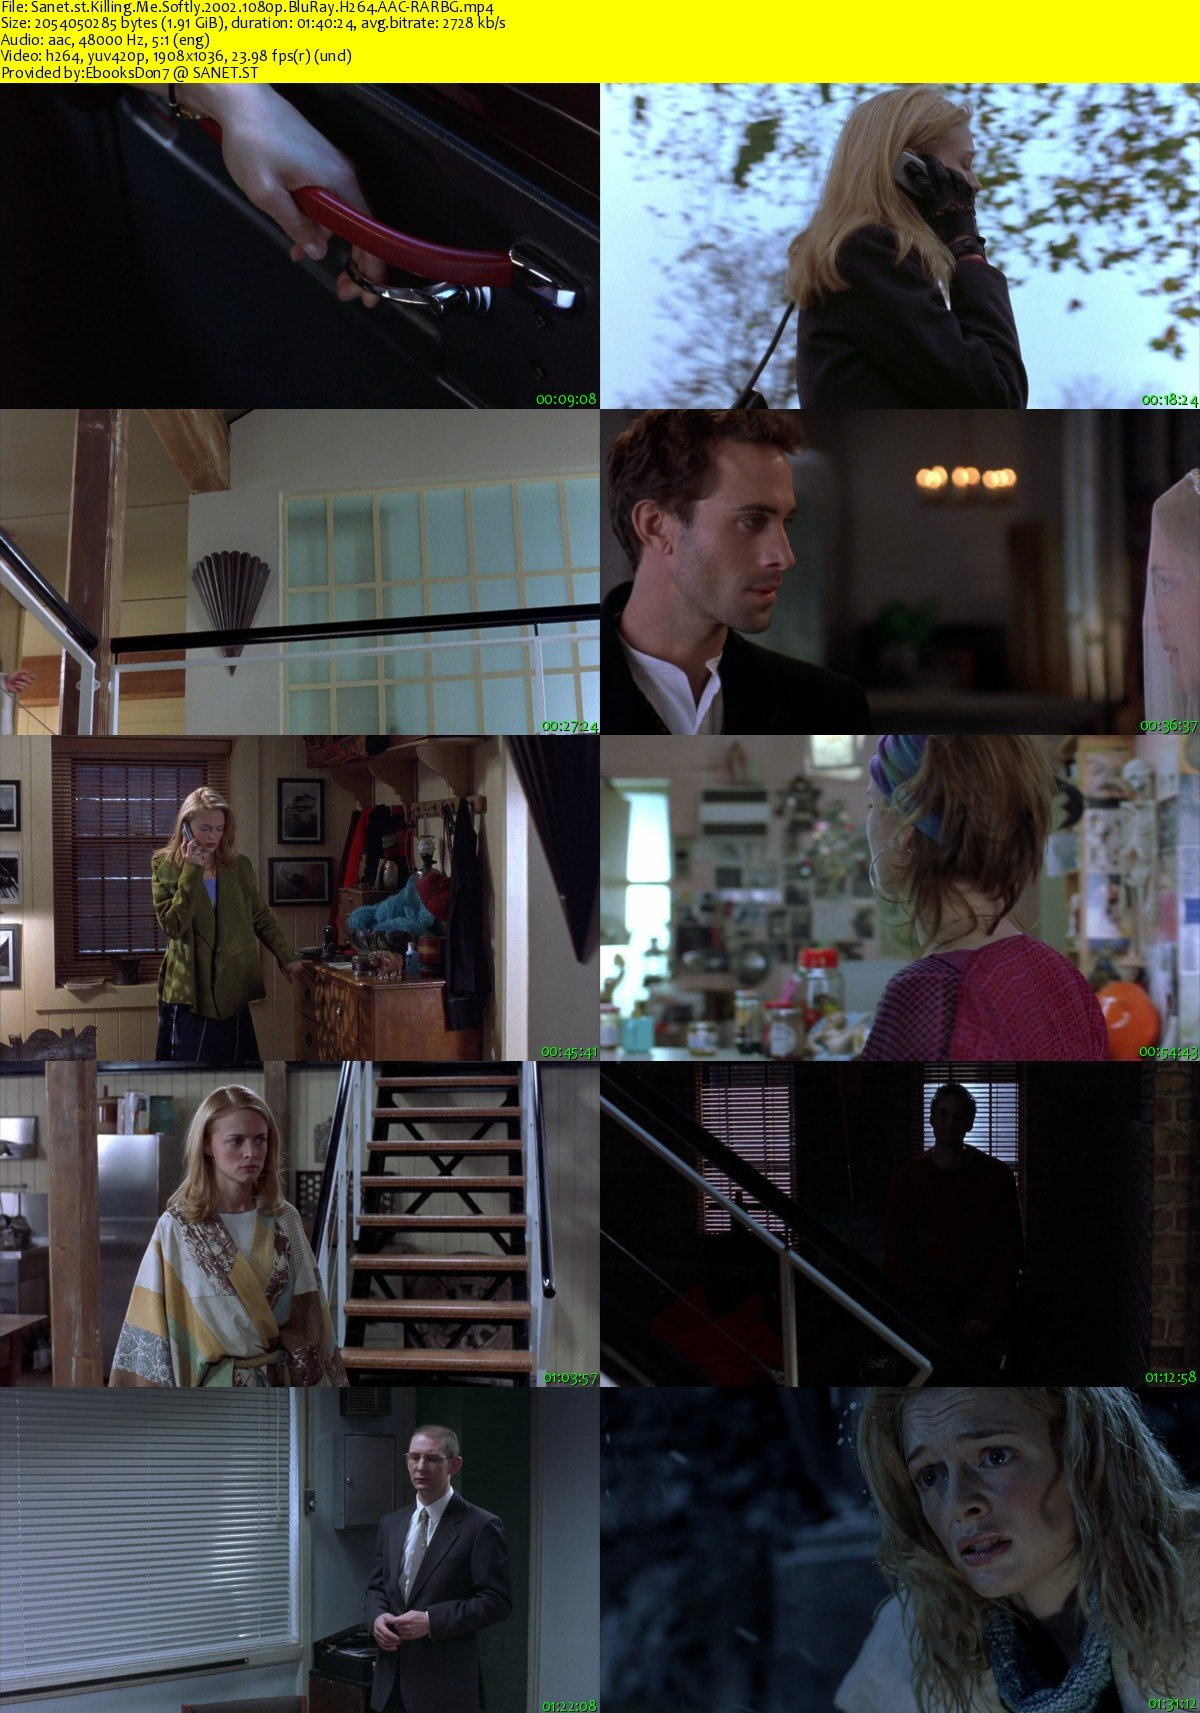 Download Killing Me Softly 2002 1080p BluRay H264 AAC